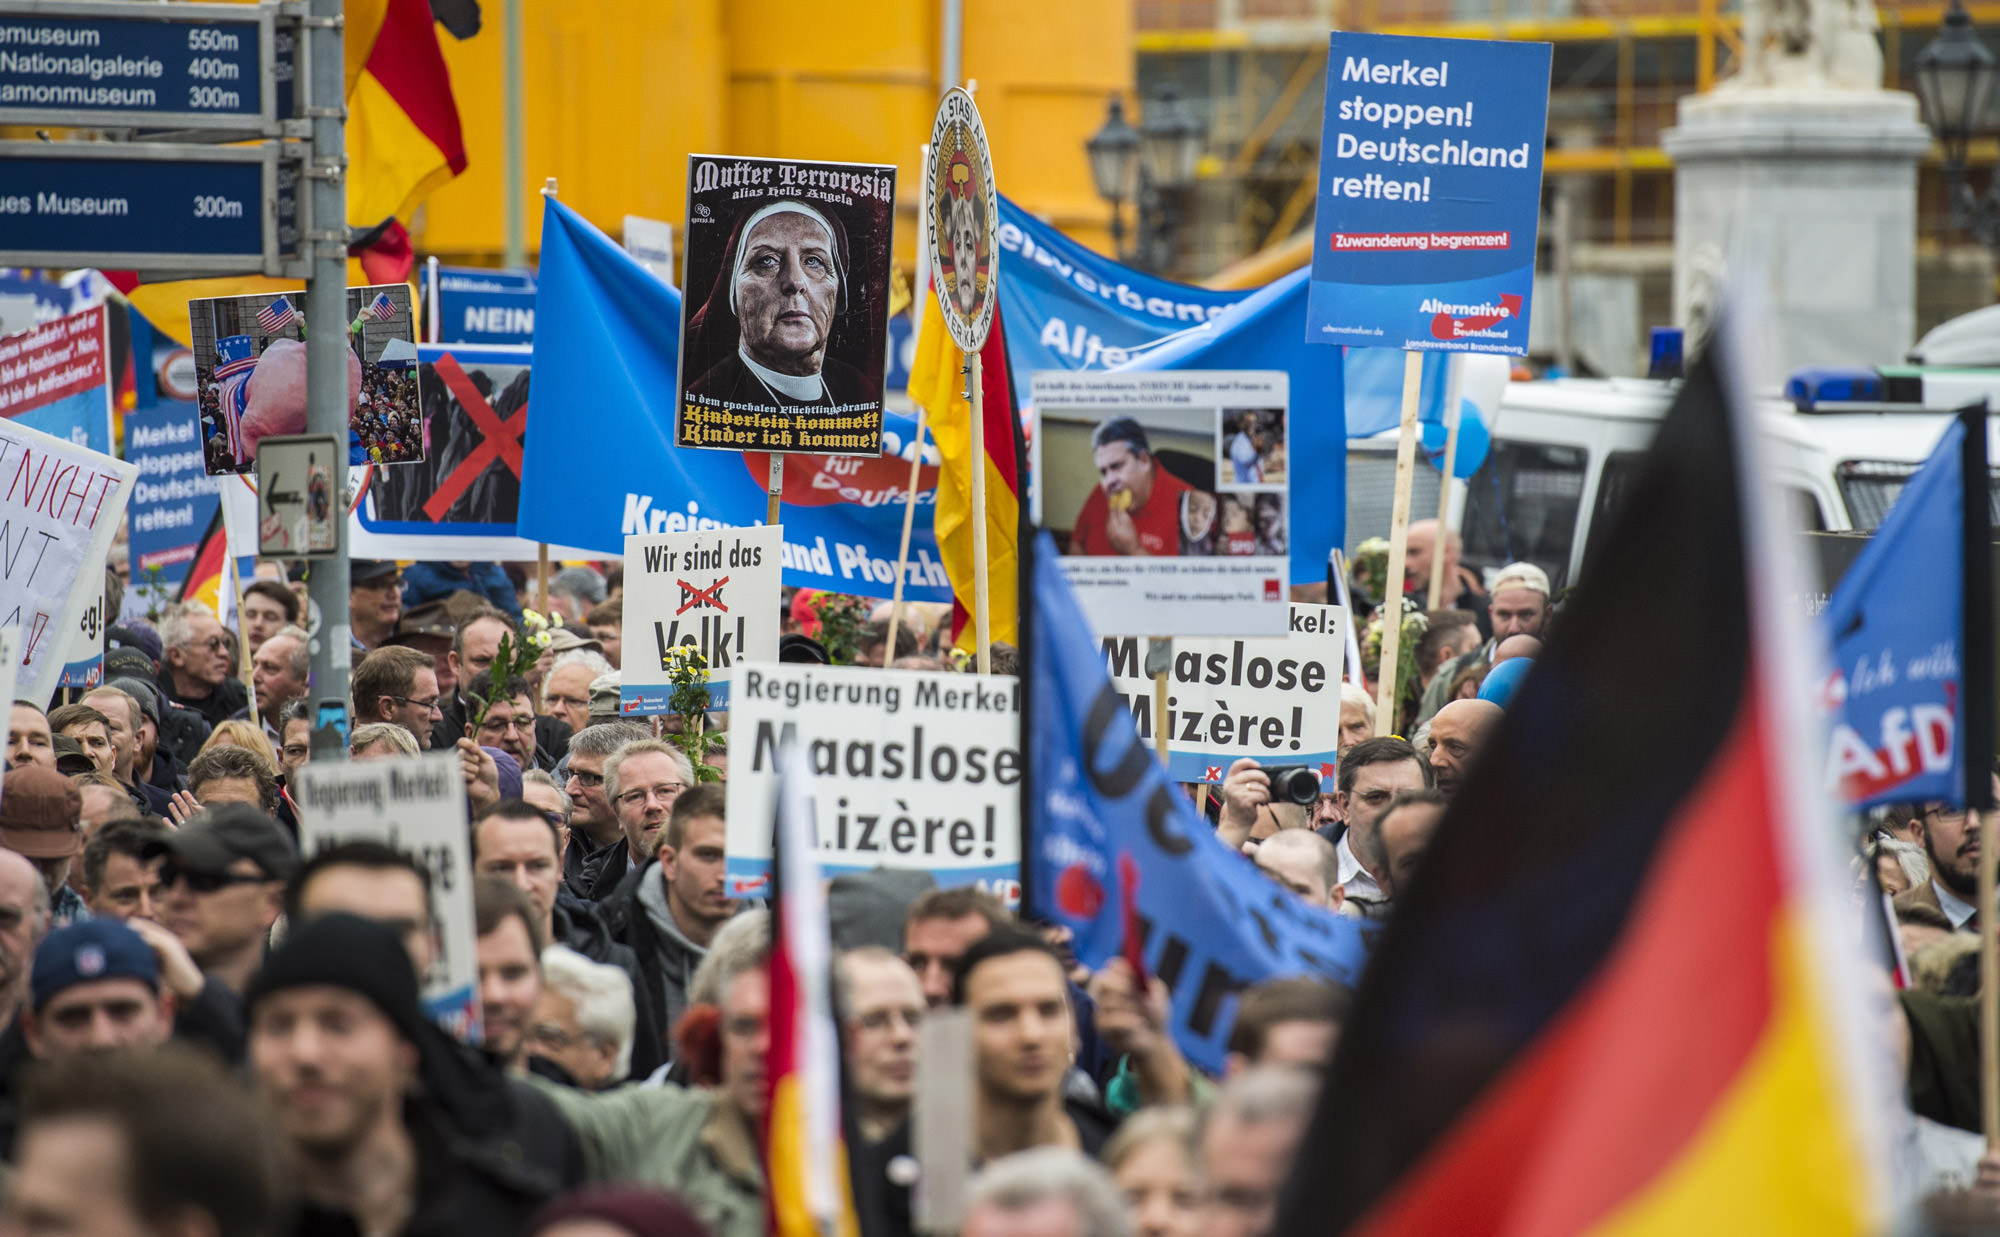 An AfD demonstration.